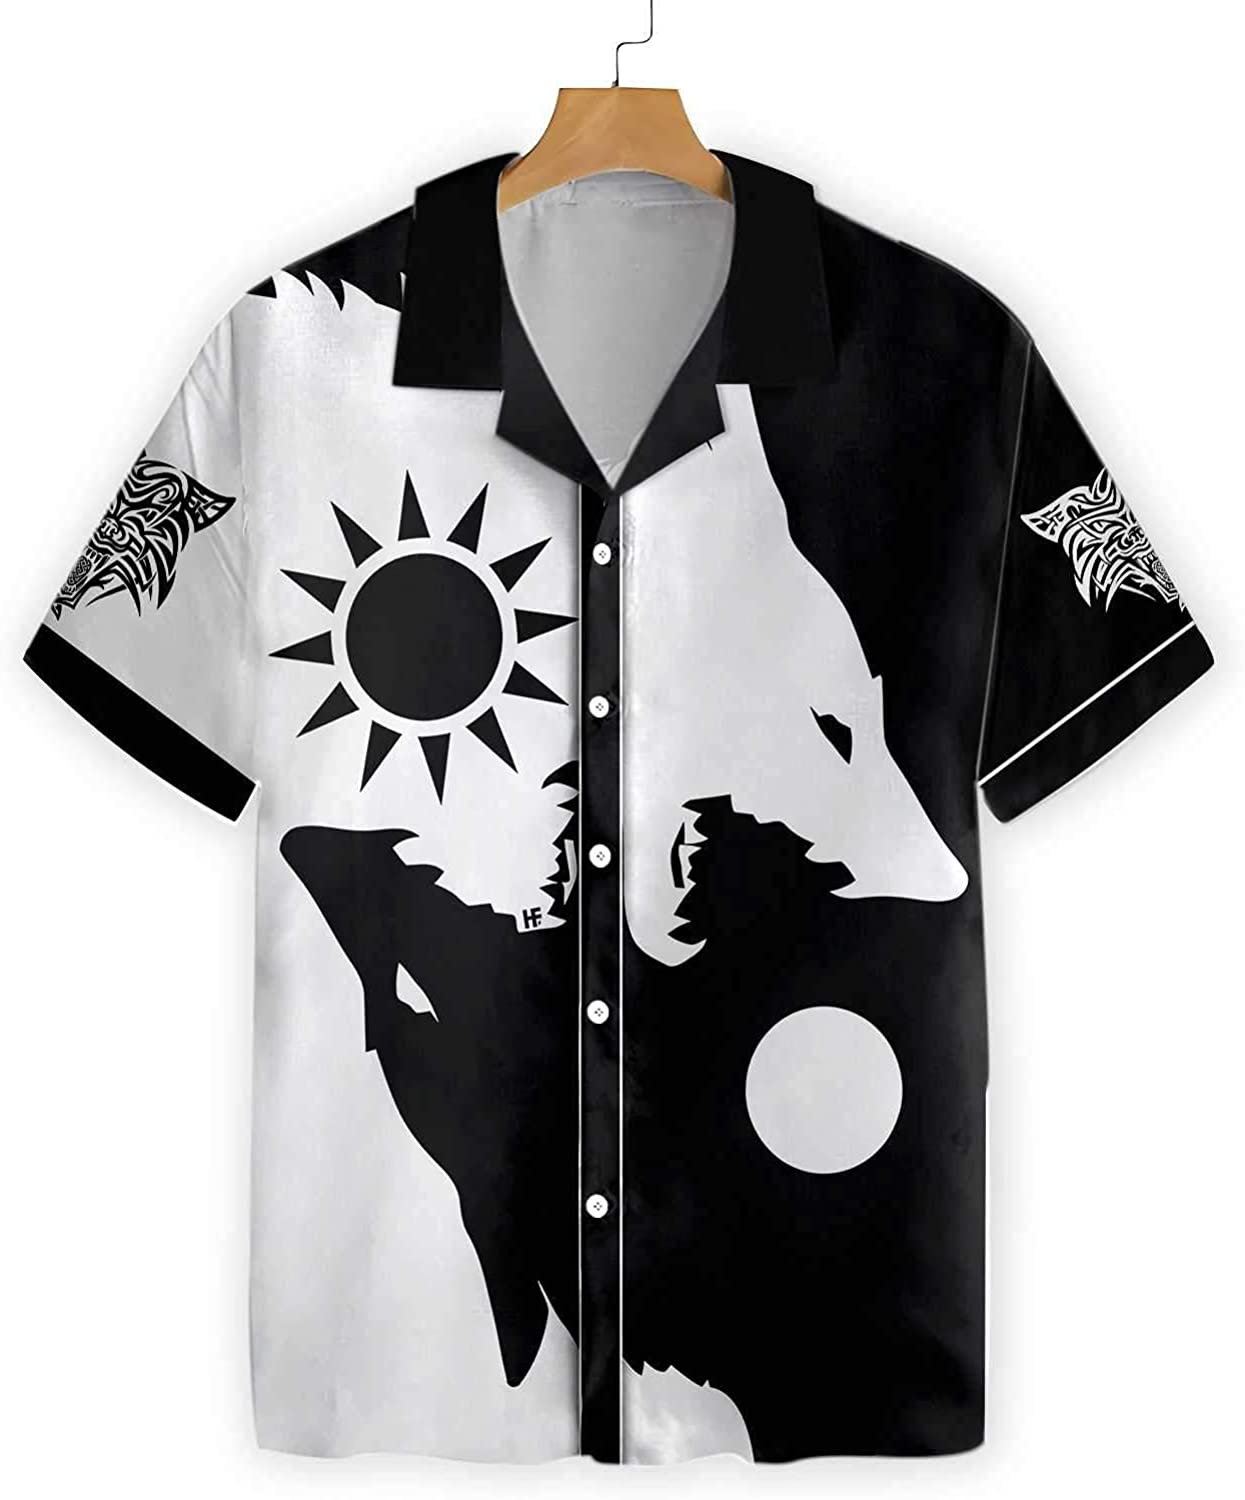 XStyles18 - Max 80% OFF Day and Austin Mall Night Wolves Hawaiian Shirt